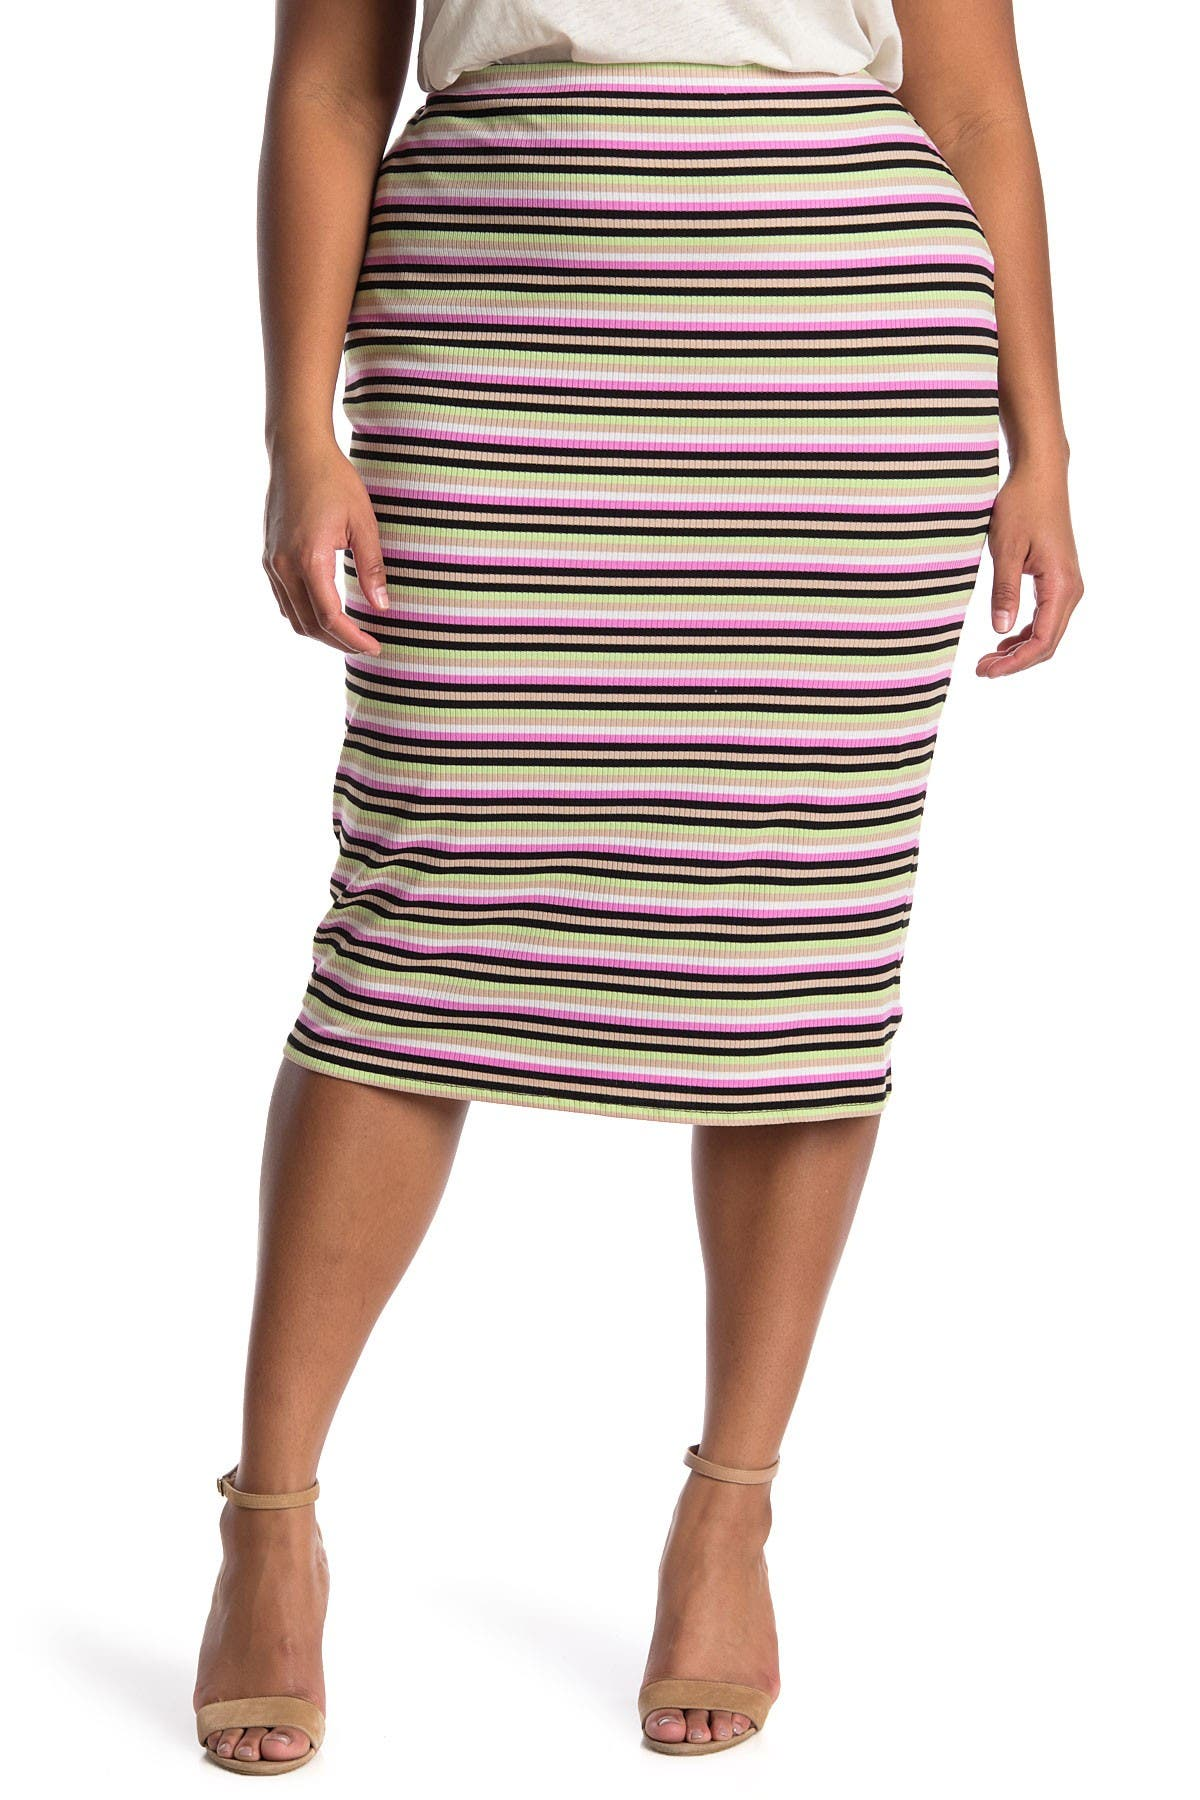 Image of AFRM Port Ribbed Pencil Skirt